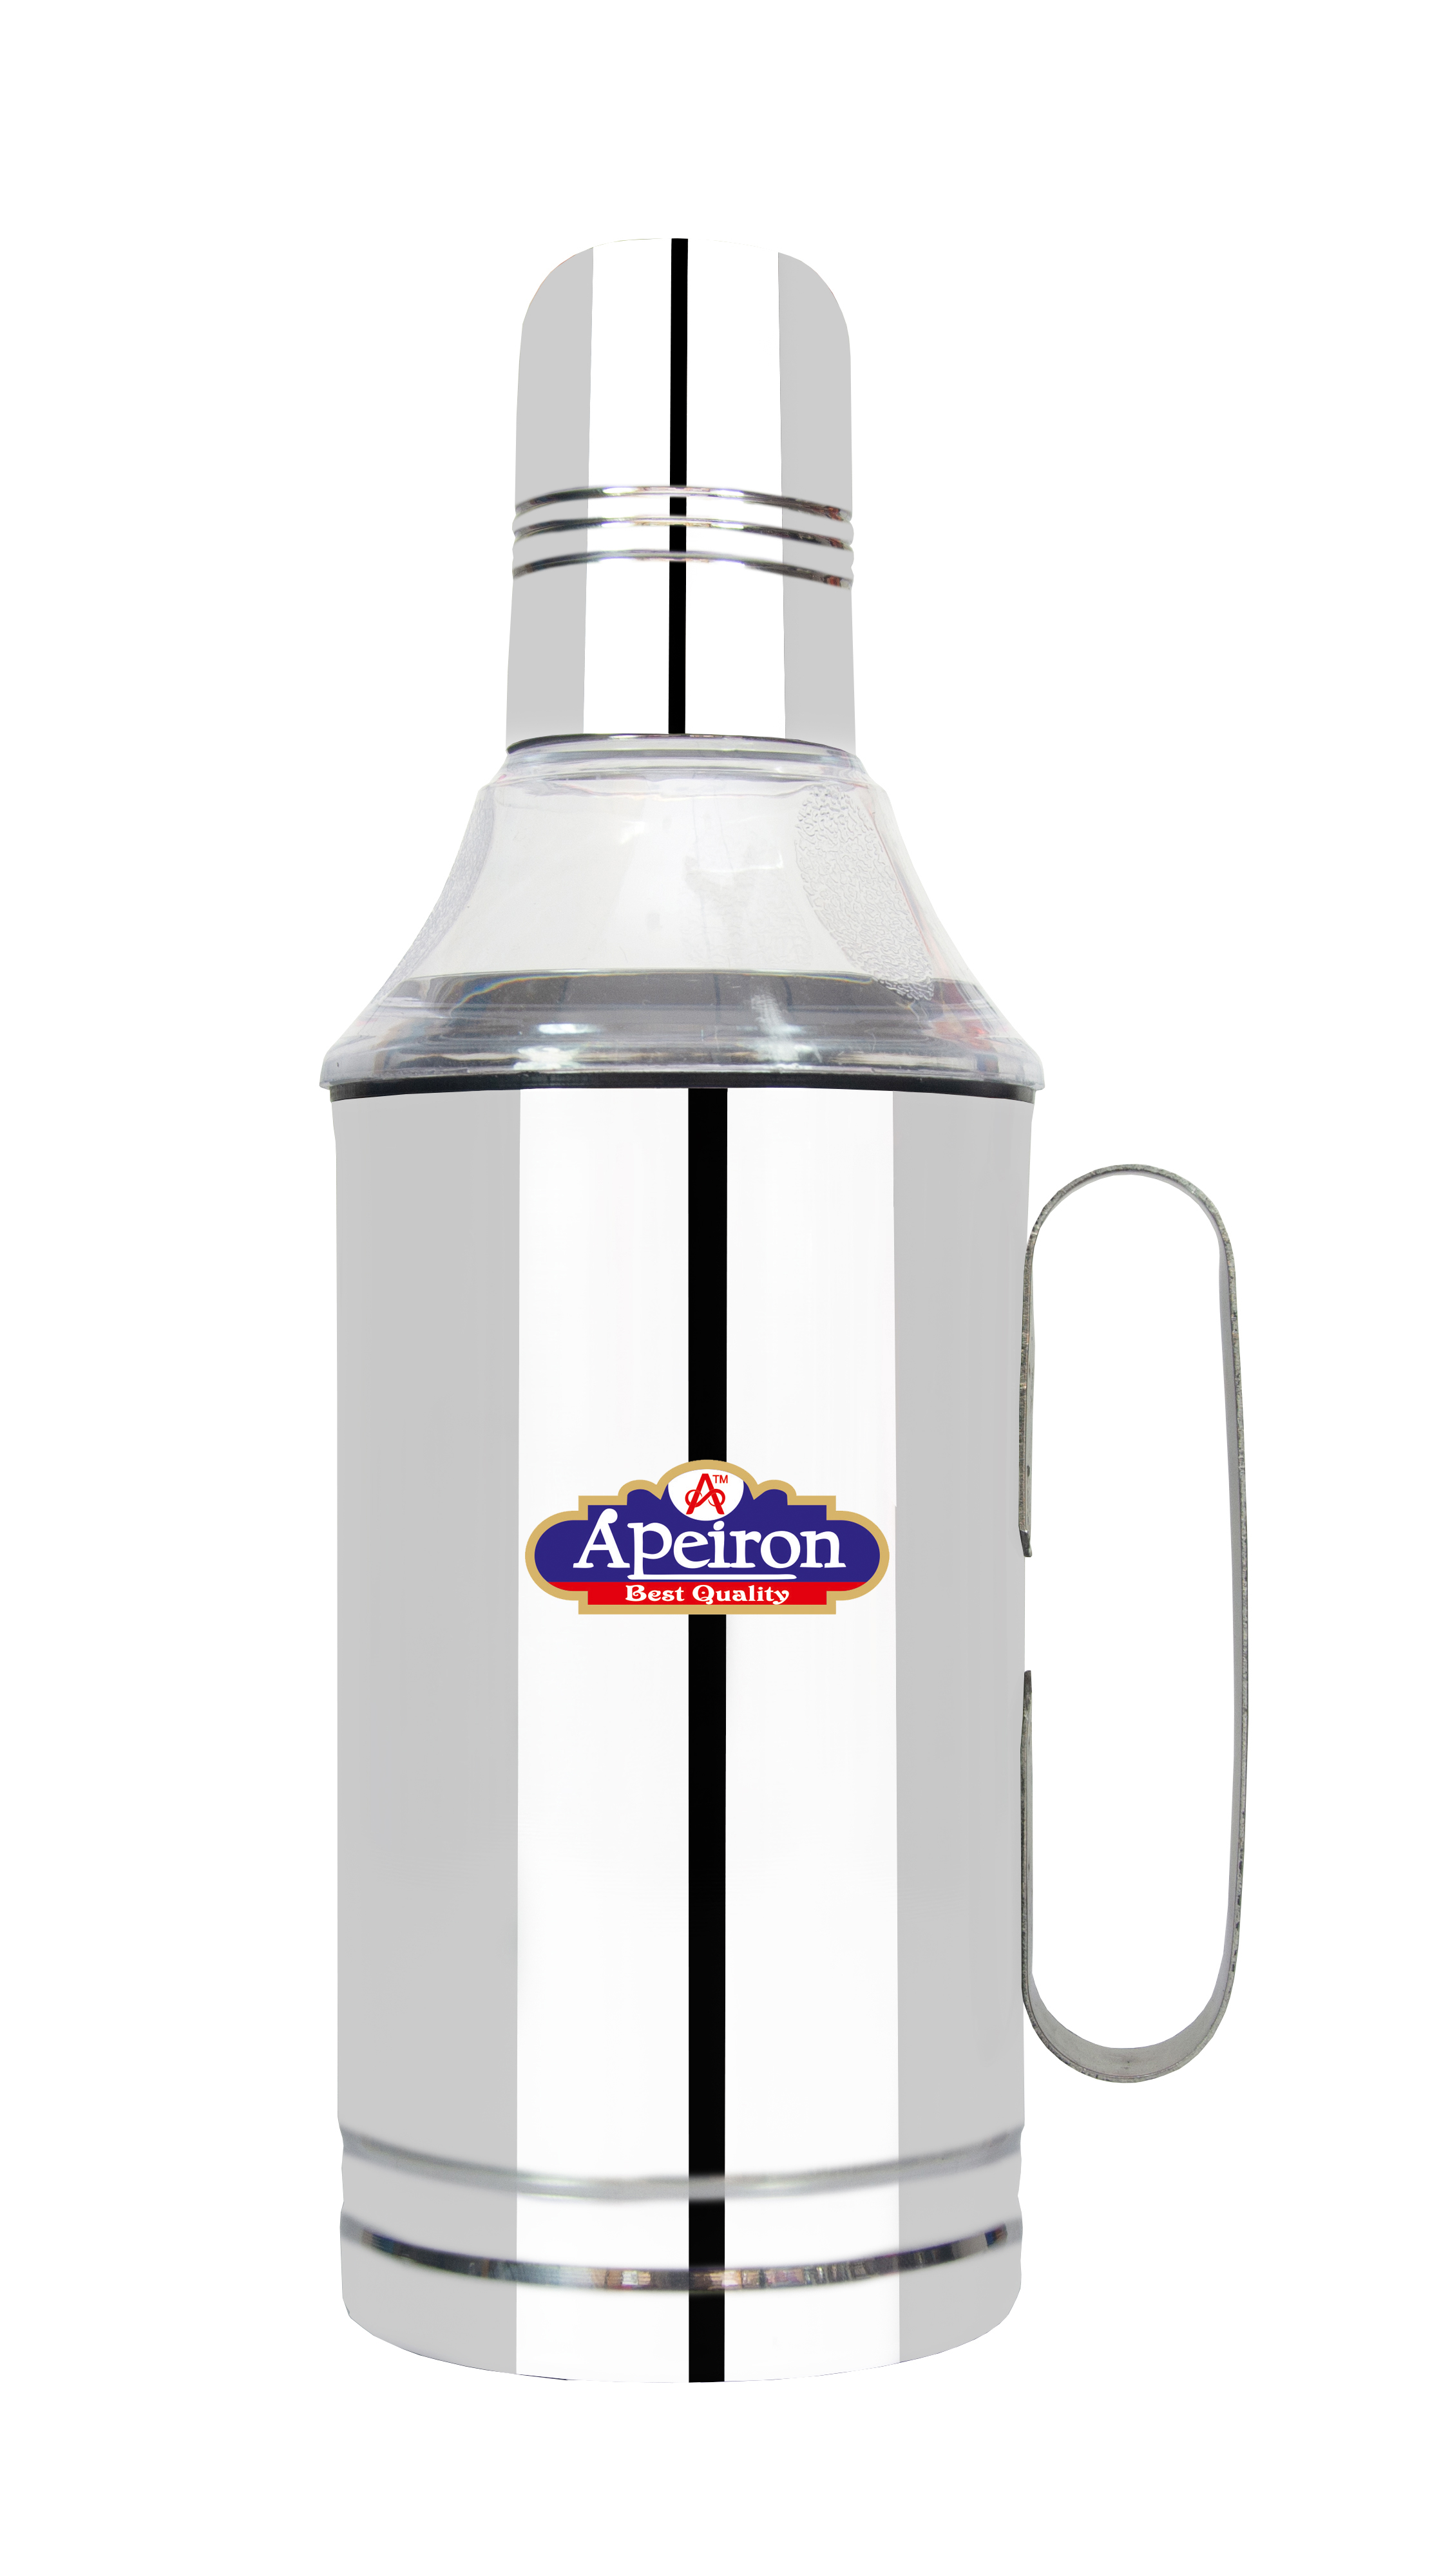 Apeiron 750 ml Cooking Oil Dispenser  Pack of 1